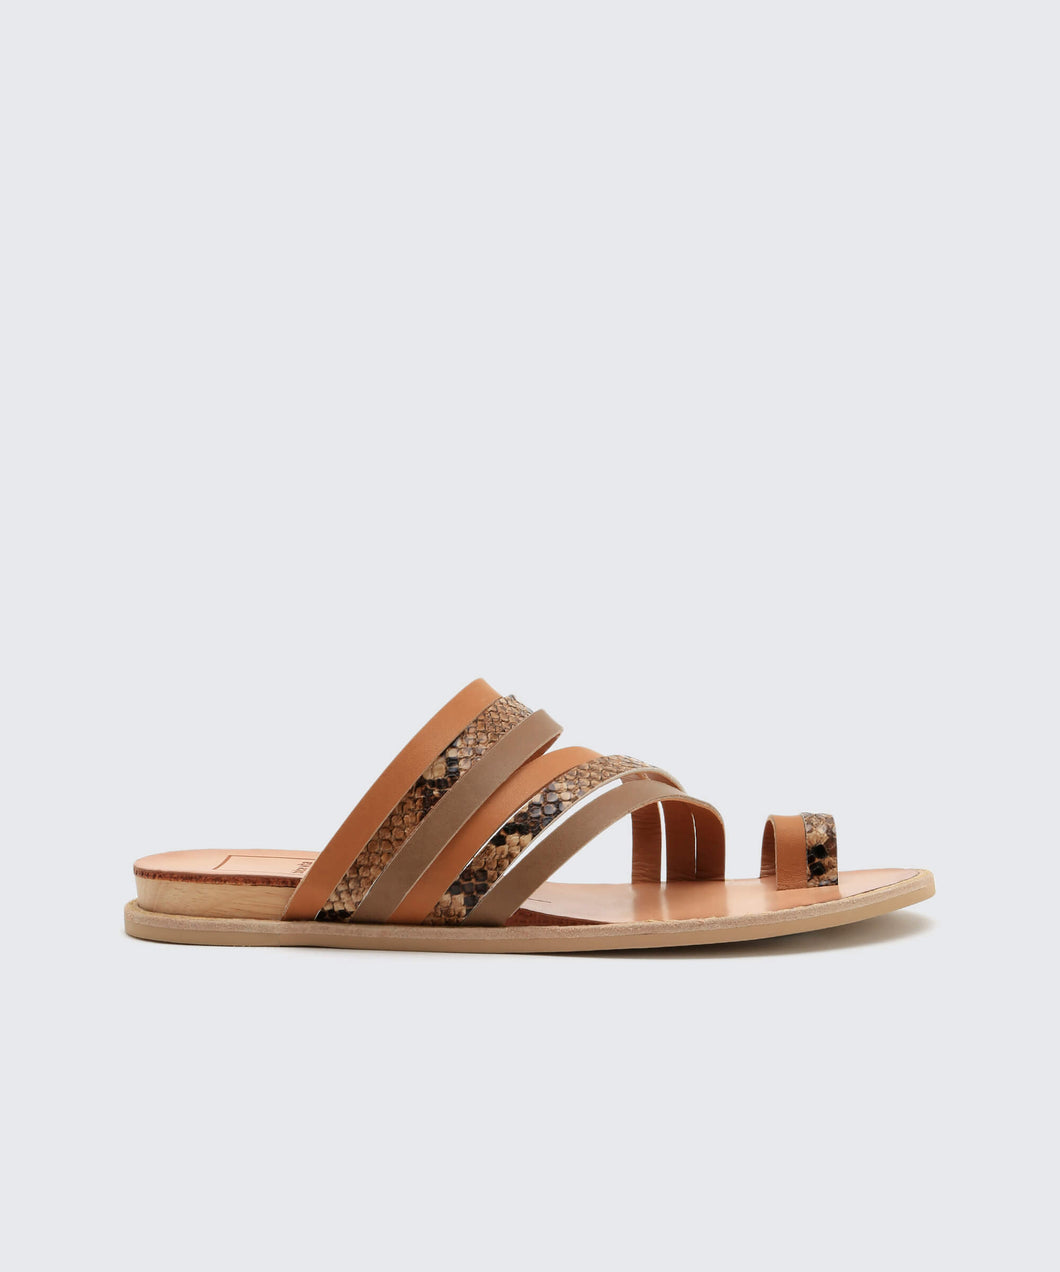 NELLY SANDALS IN TAN -   Dolce Vita